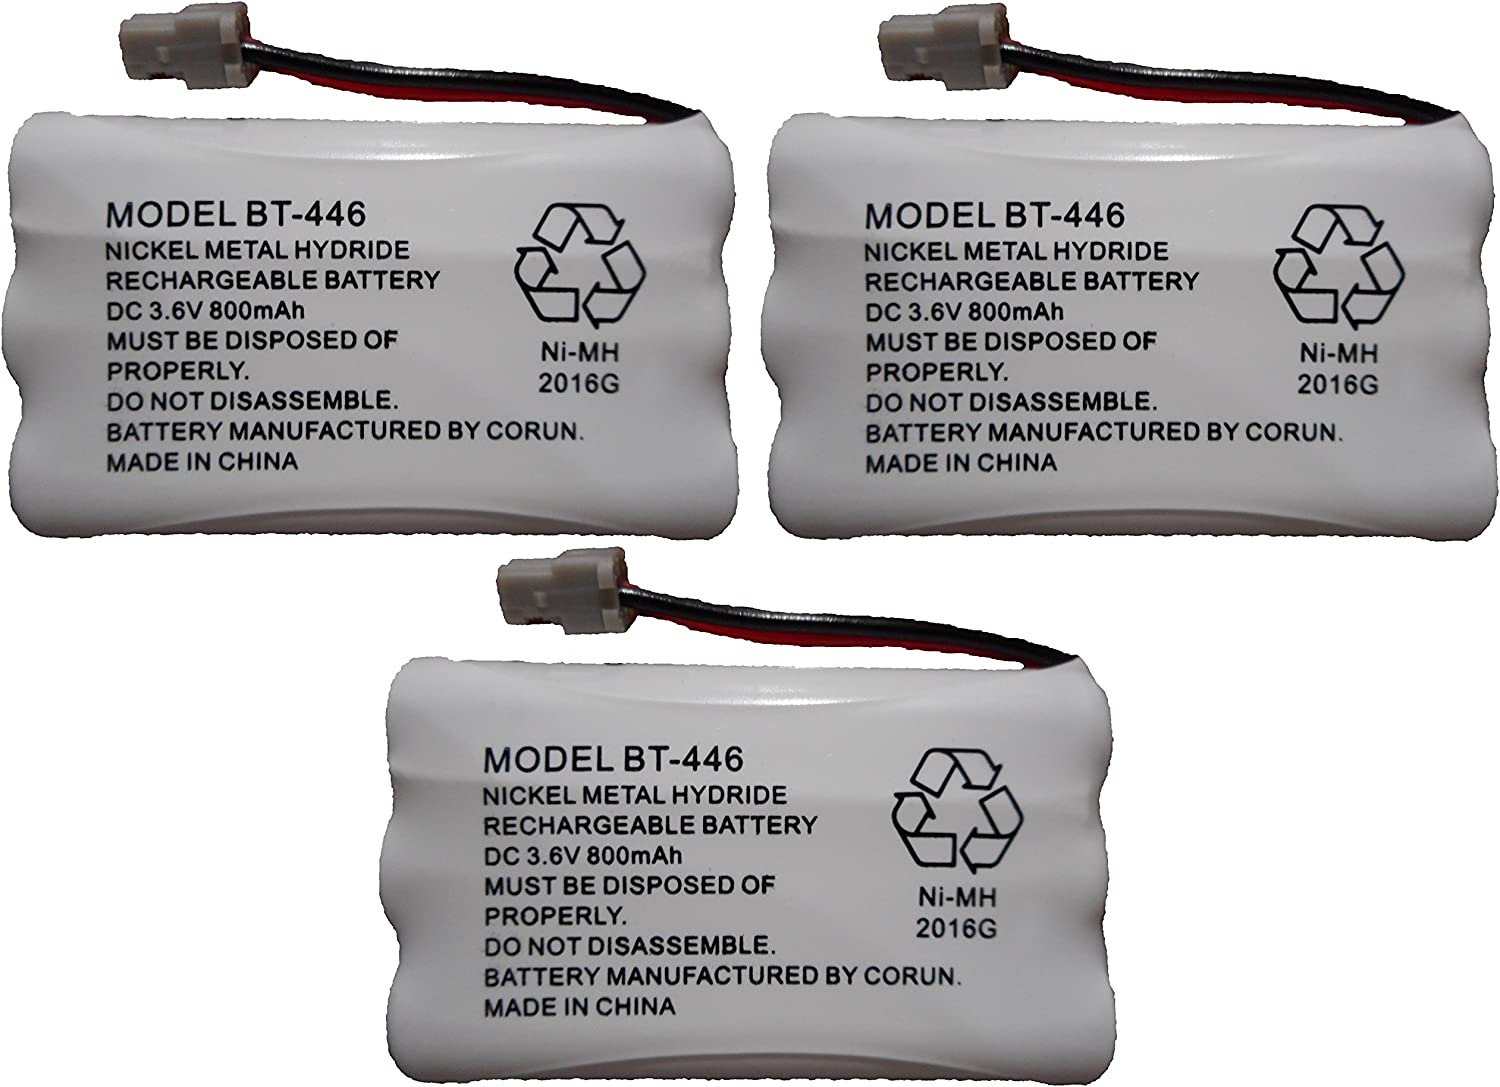 BT446 BT-446 BBTY0503001 BT-1004 BT-1005 GE-TL26402 BT-504 CPH-488B Rechargeable Cordless Telephone Battery DC 3.6V 800mAh Manufactured by Corun for Uniden